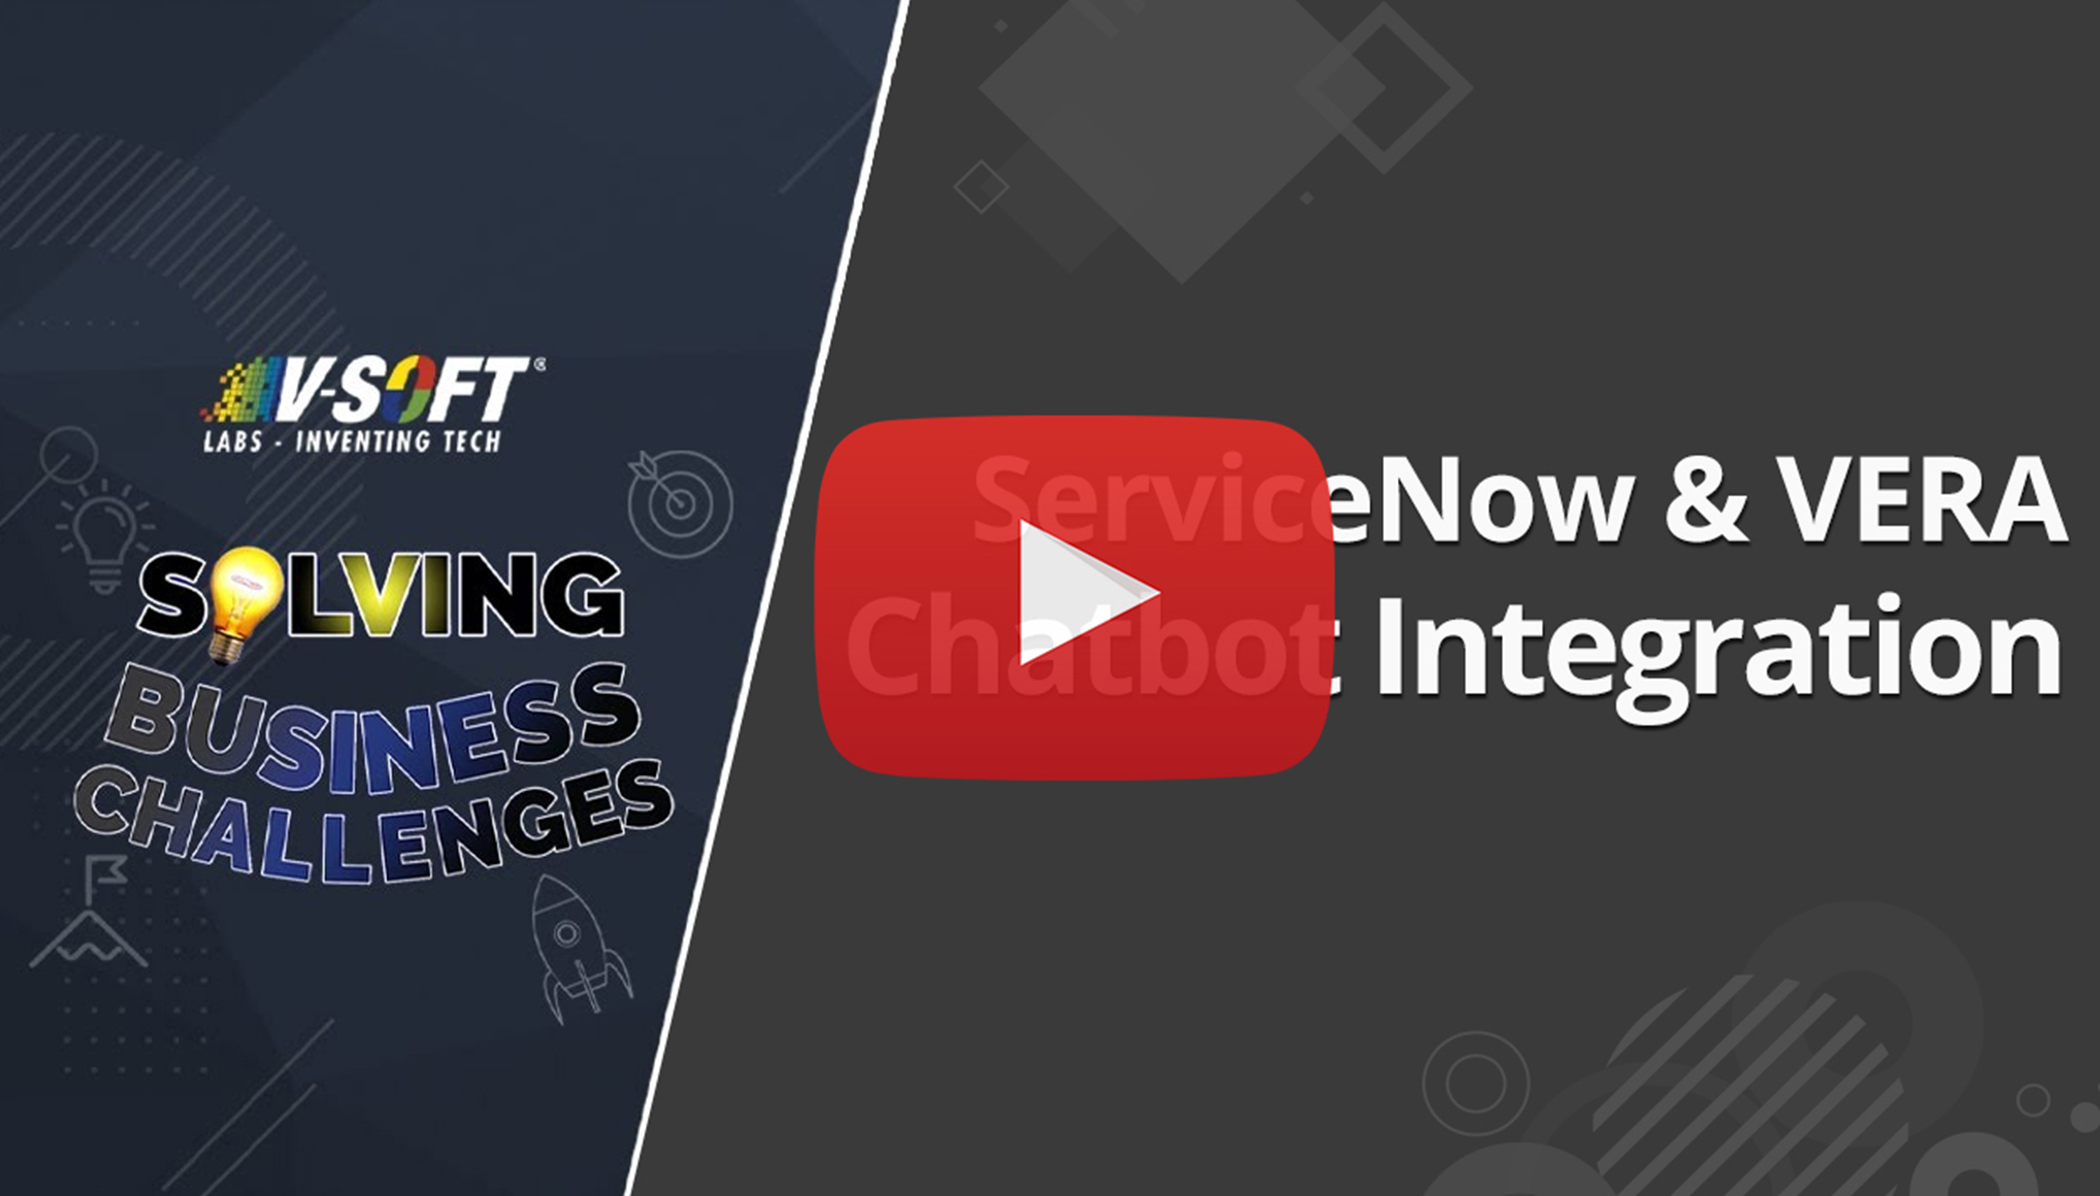 ServiceNow Chatbot Integration Case Study